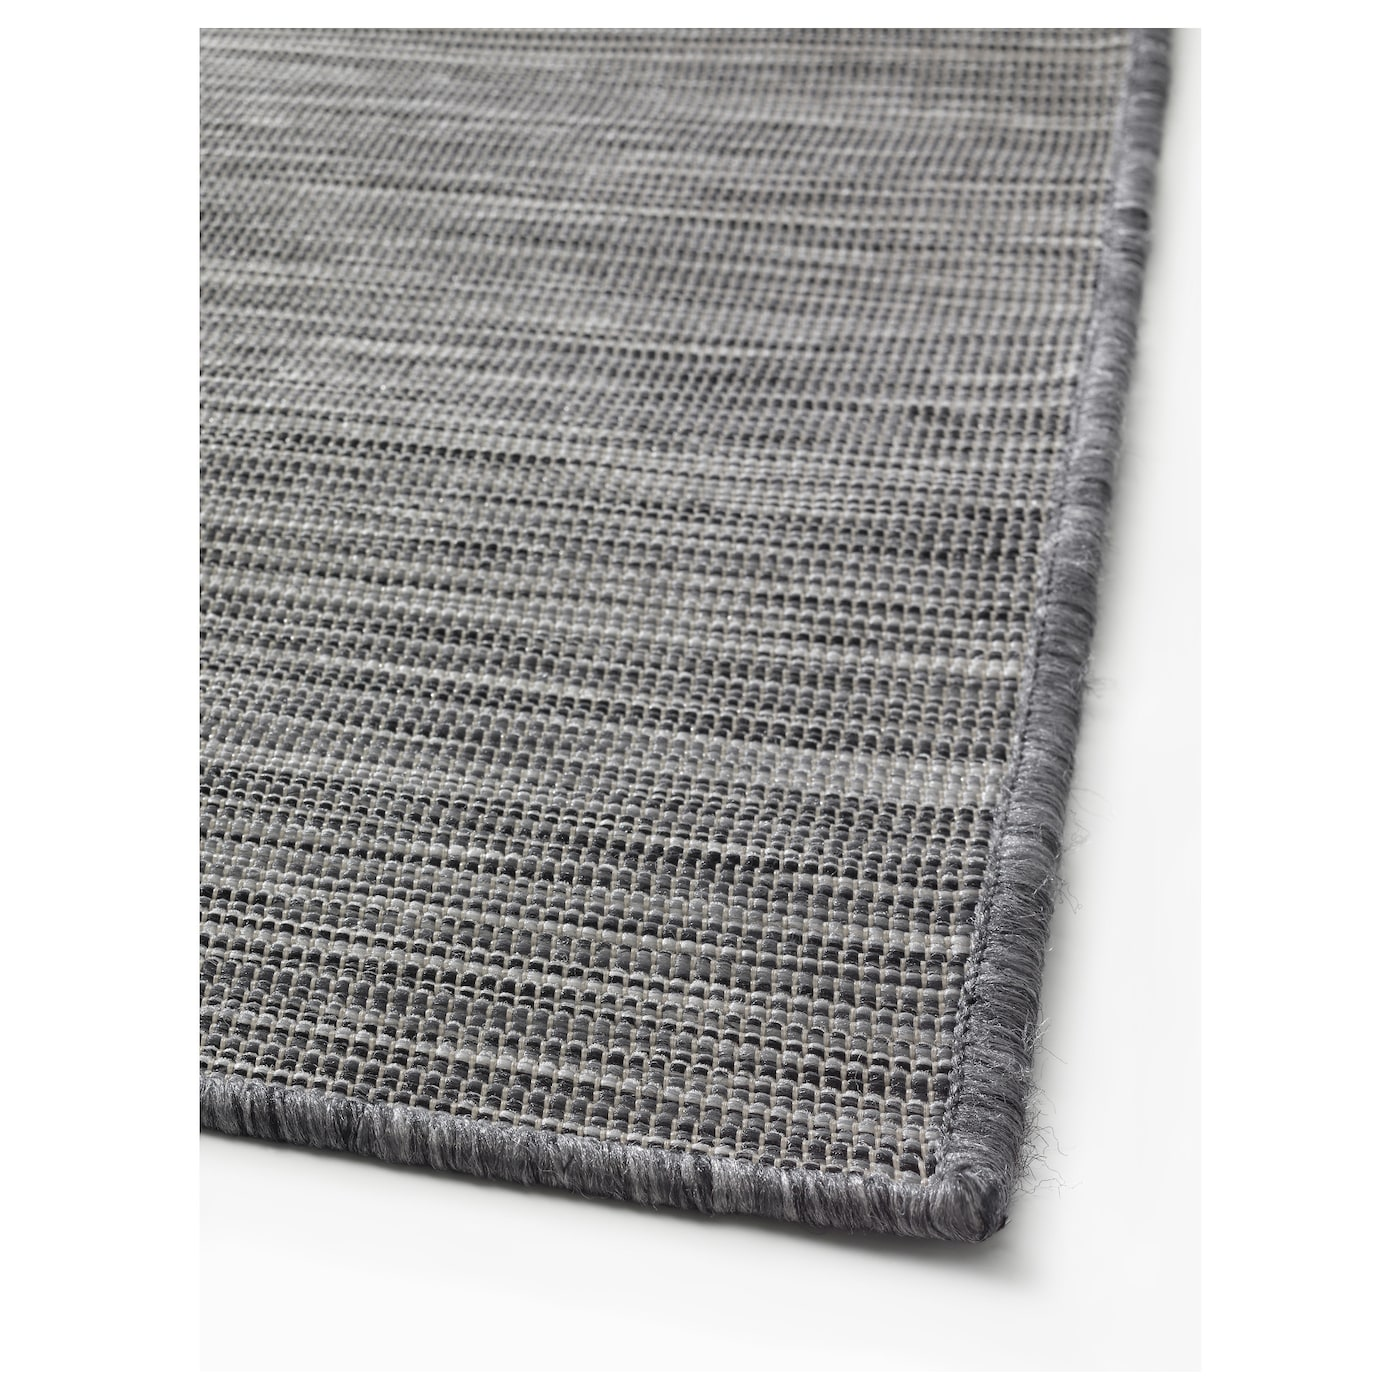 Hodde rug flatwoven in outdoor grey black 160x230 cm ikea for Ikea rugs